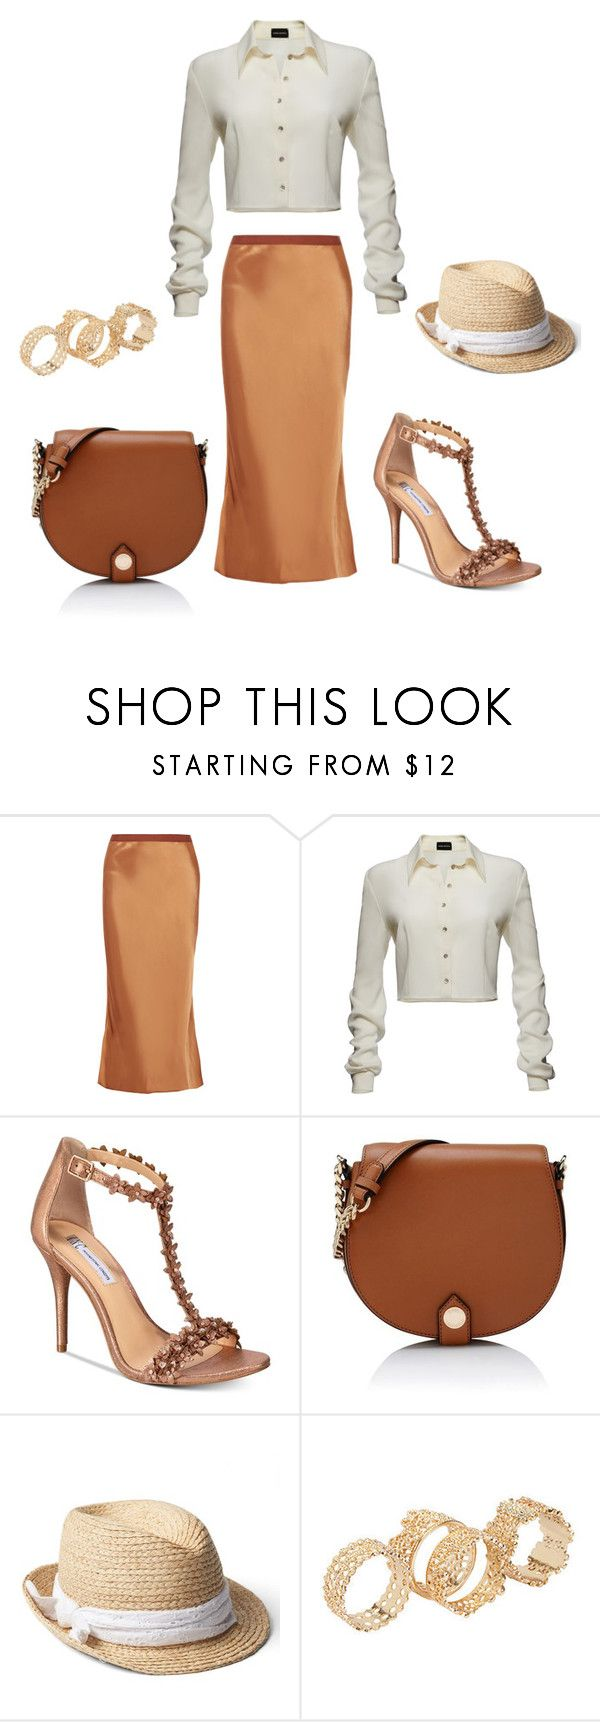 """""""Untitled #762"""" by rubysparks90 ❤ liked on Polyvore featuring Helmut Lang, Magda Butrym, INC International Concepts, Karl Lagerfeld, Gap and ALDO"""